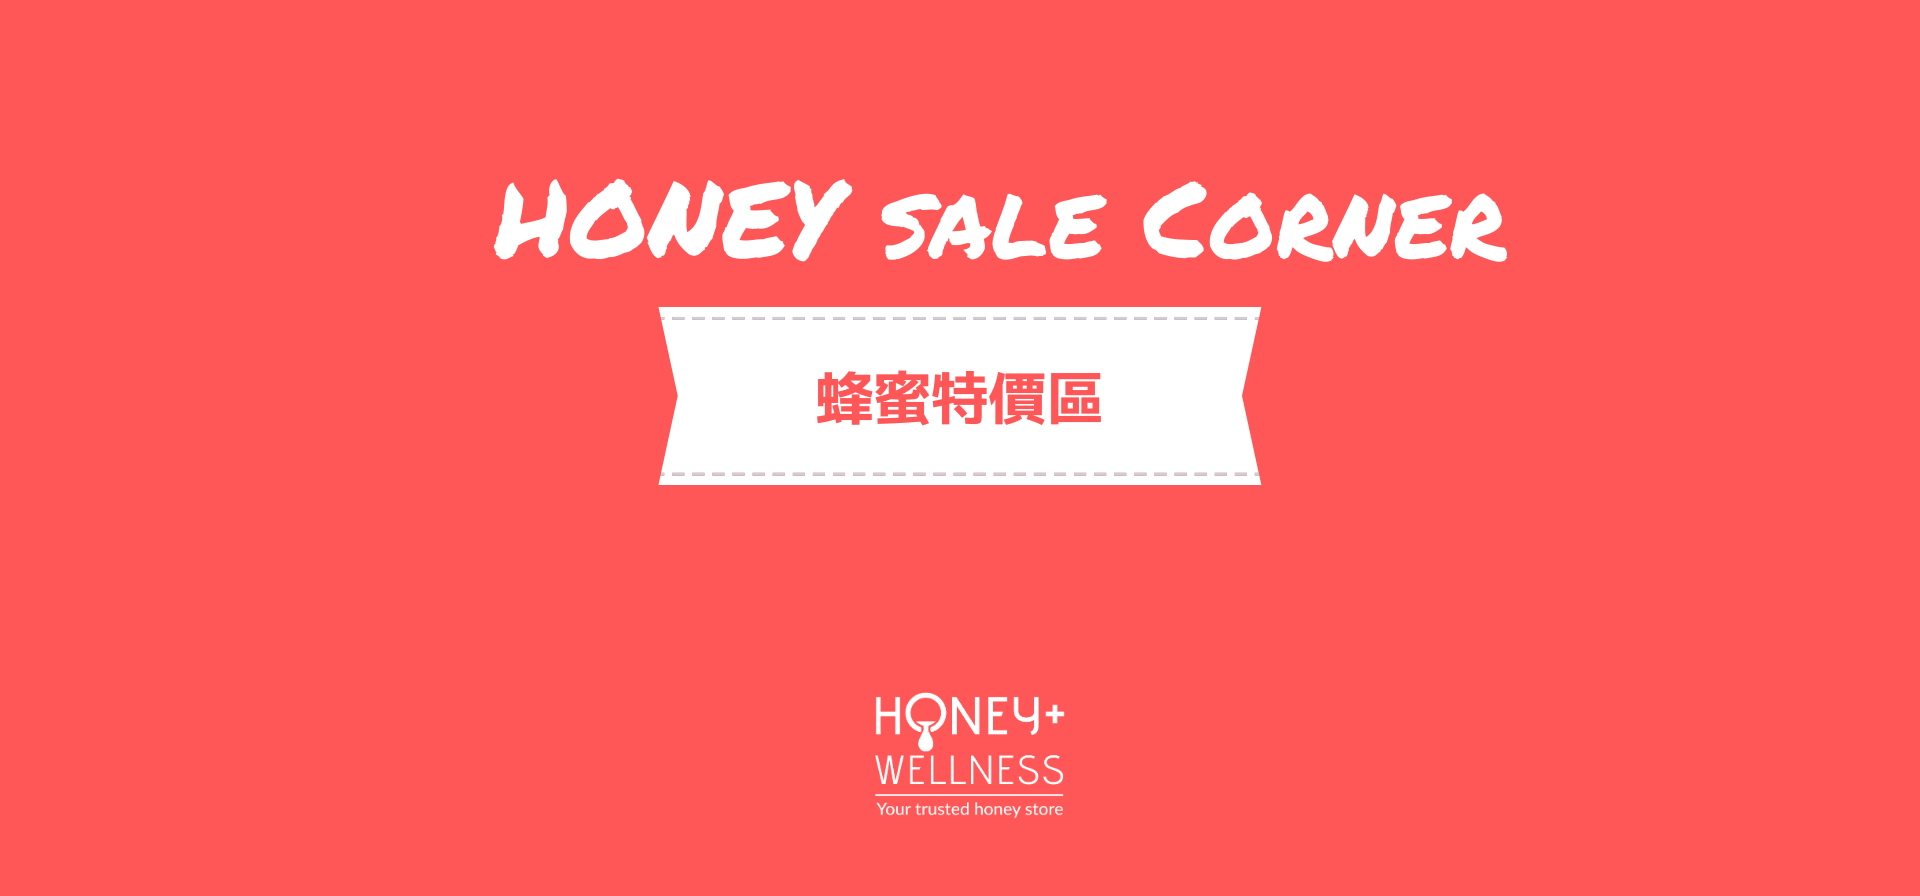 honey on sale, discounted honey, honey on special offer, outlet, coupon, 優惠,特價,開倉,大減價,蜂蜜